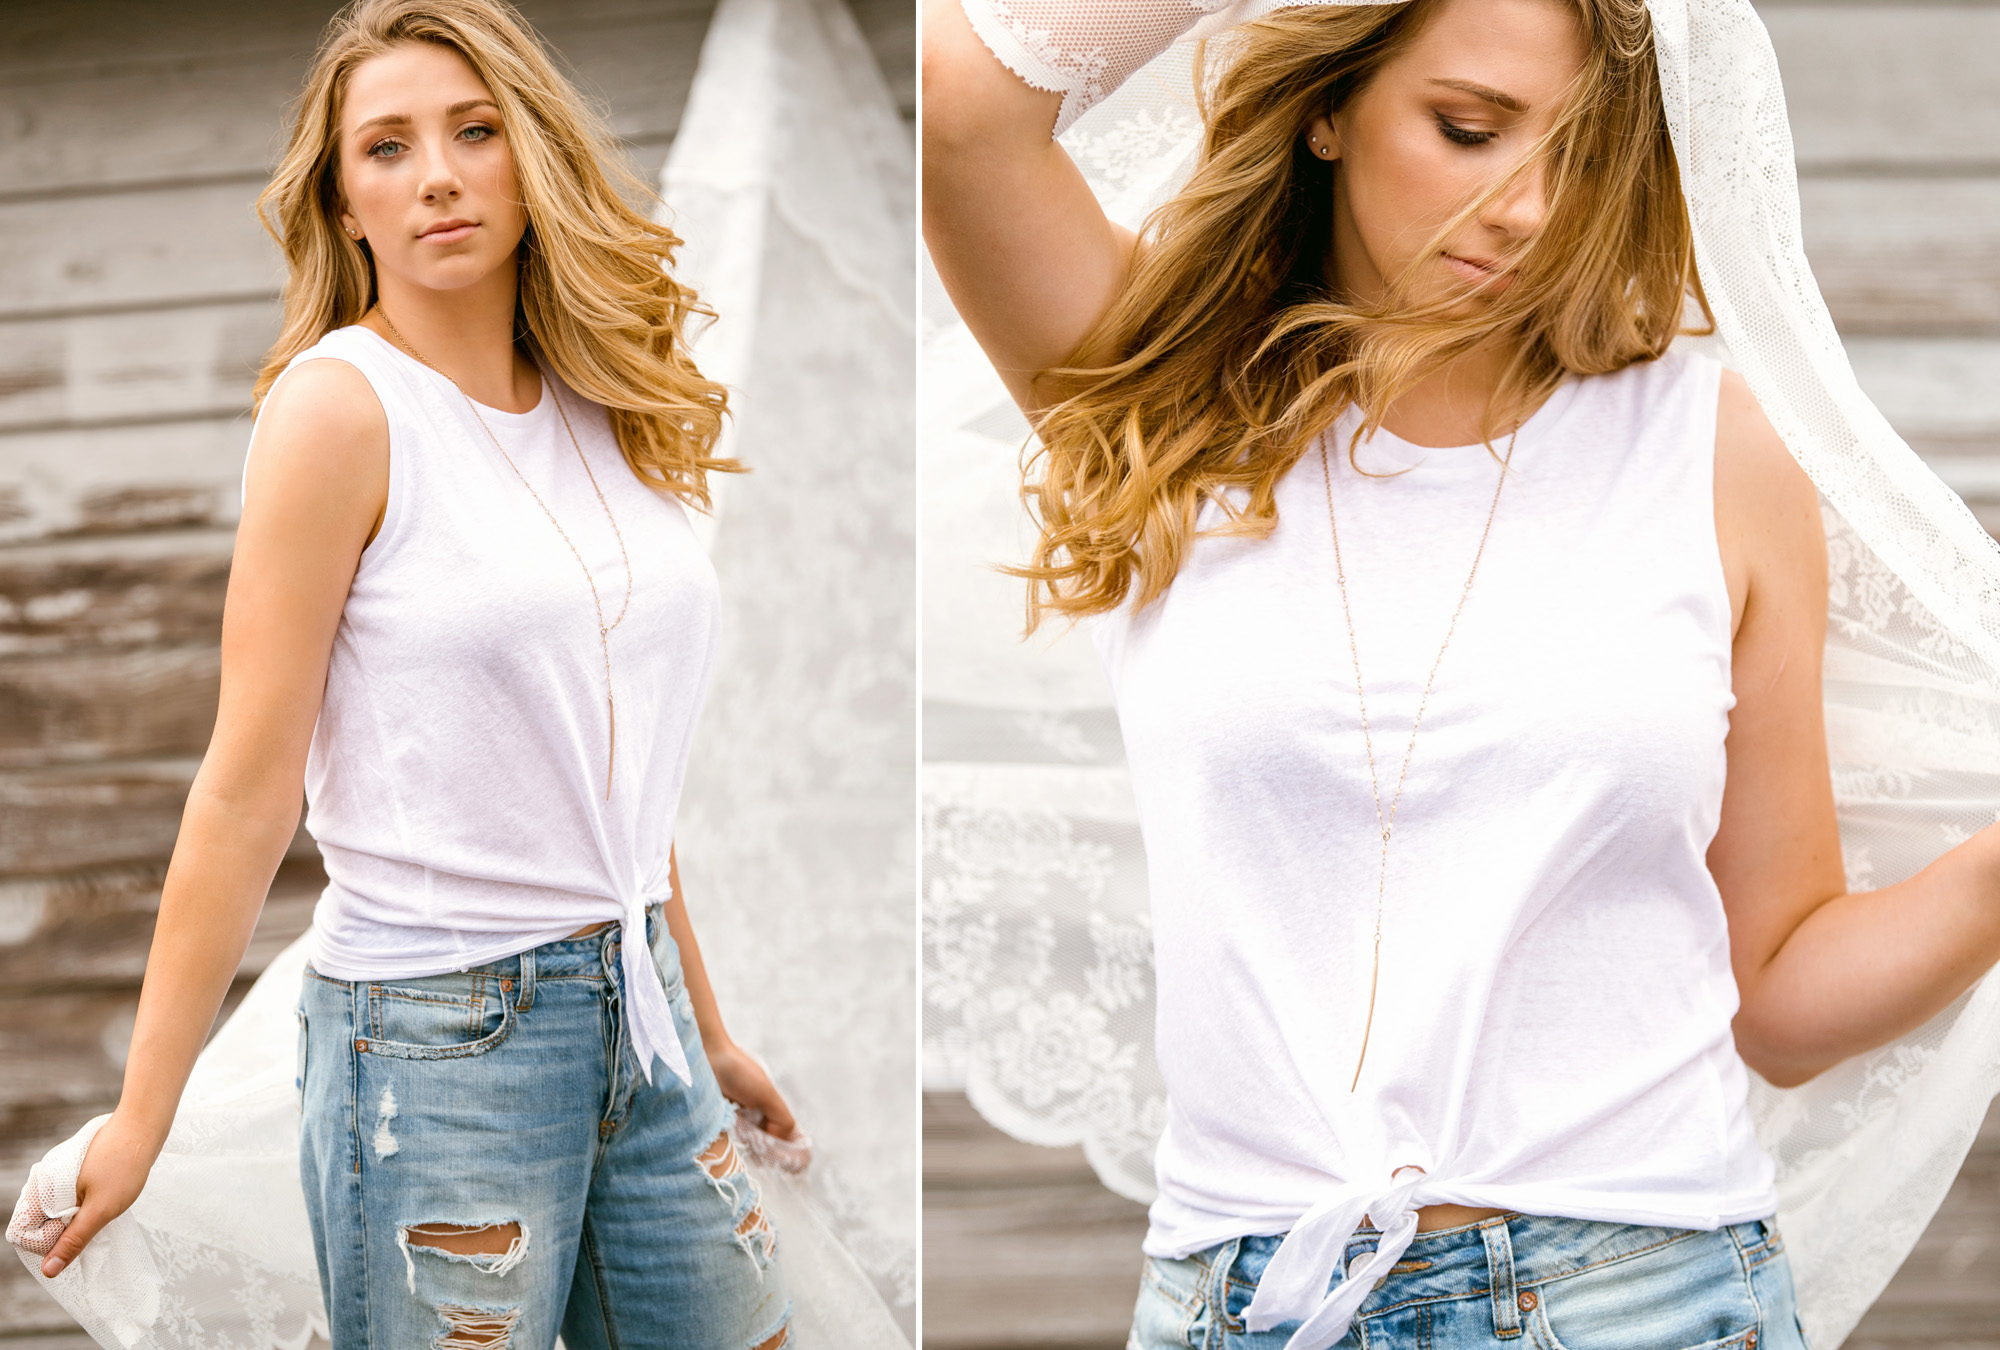 Best senior pictures of Eastsdie Catholic High School girl in white tshirt and jeans with lace_Studio B Portraits.jpg